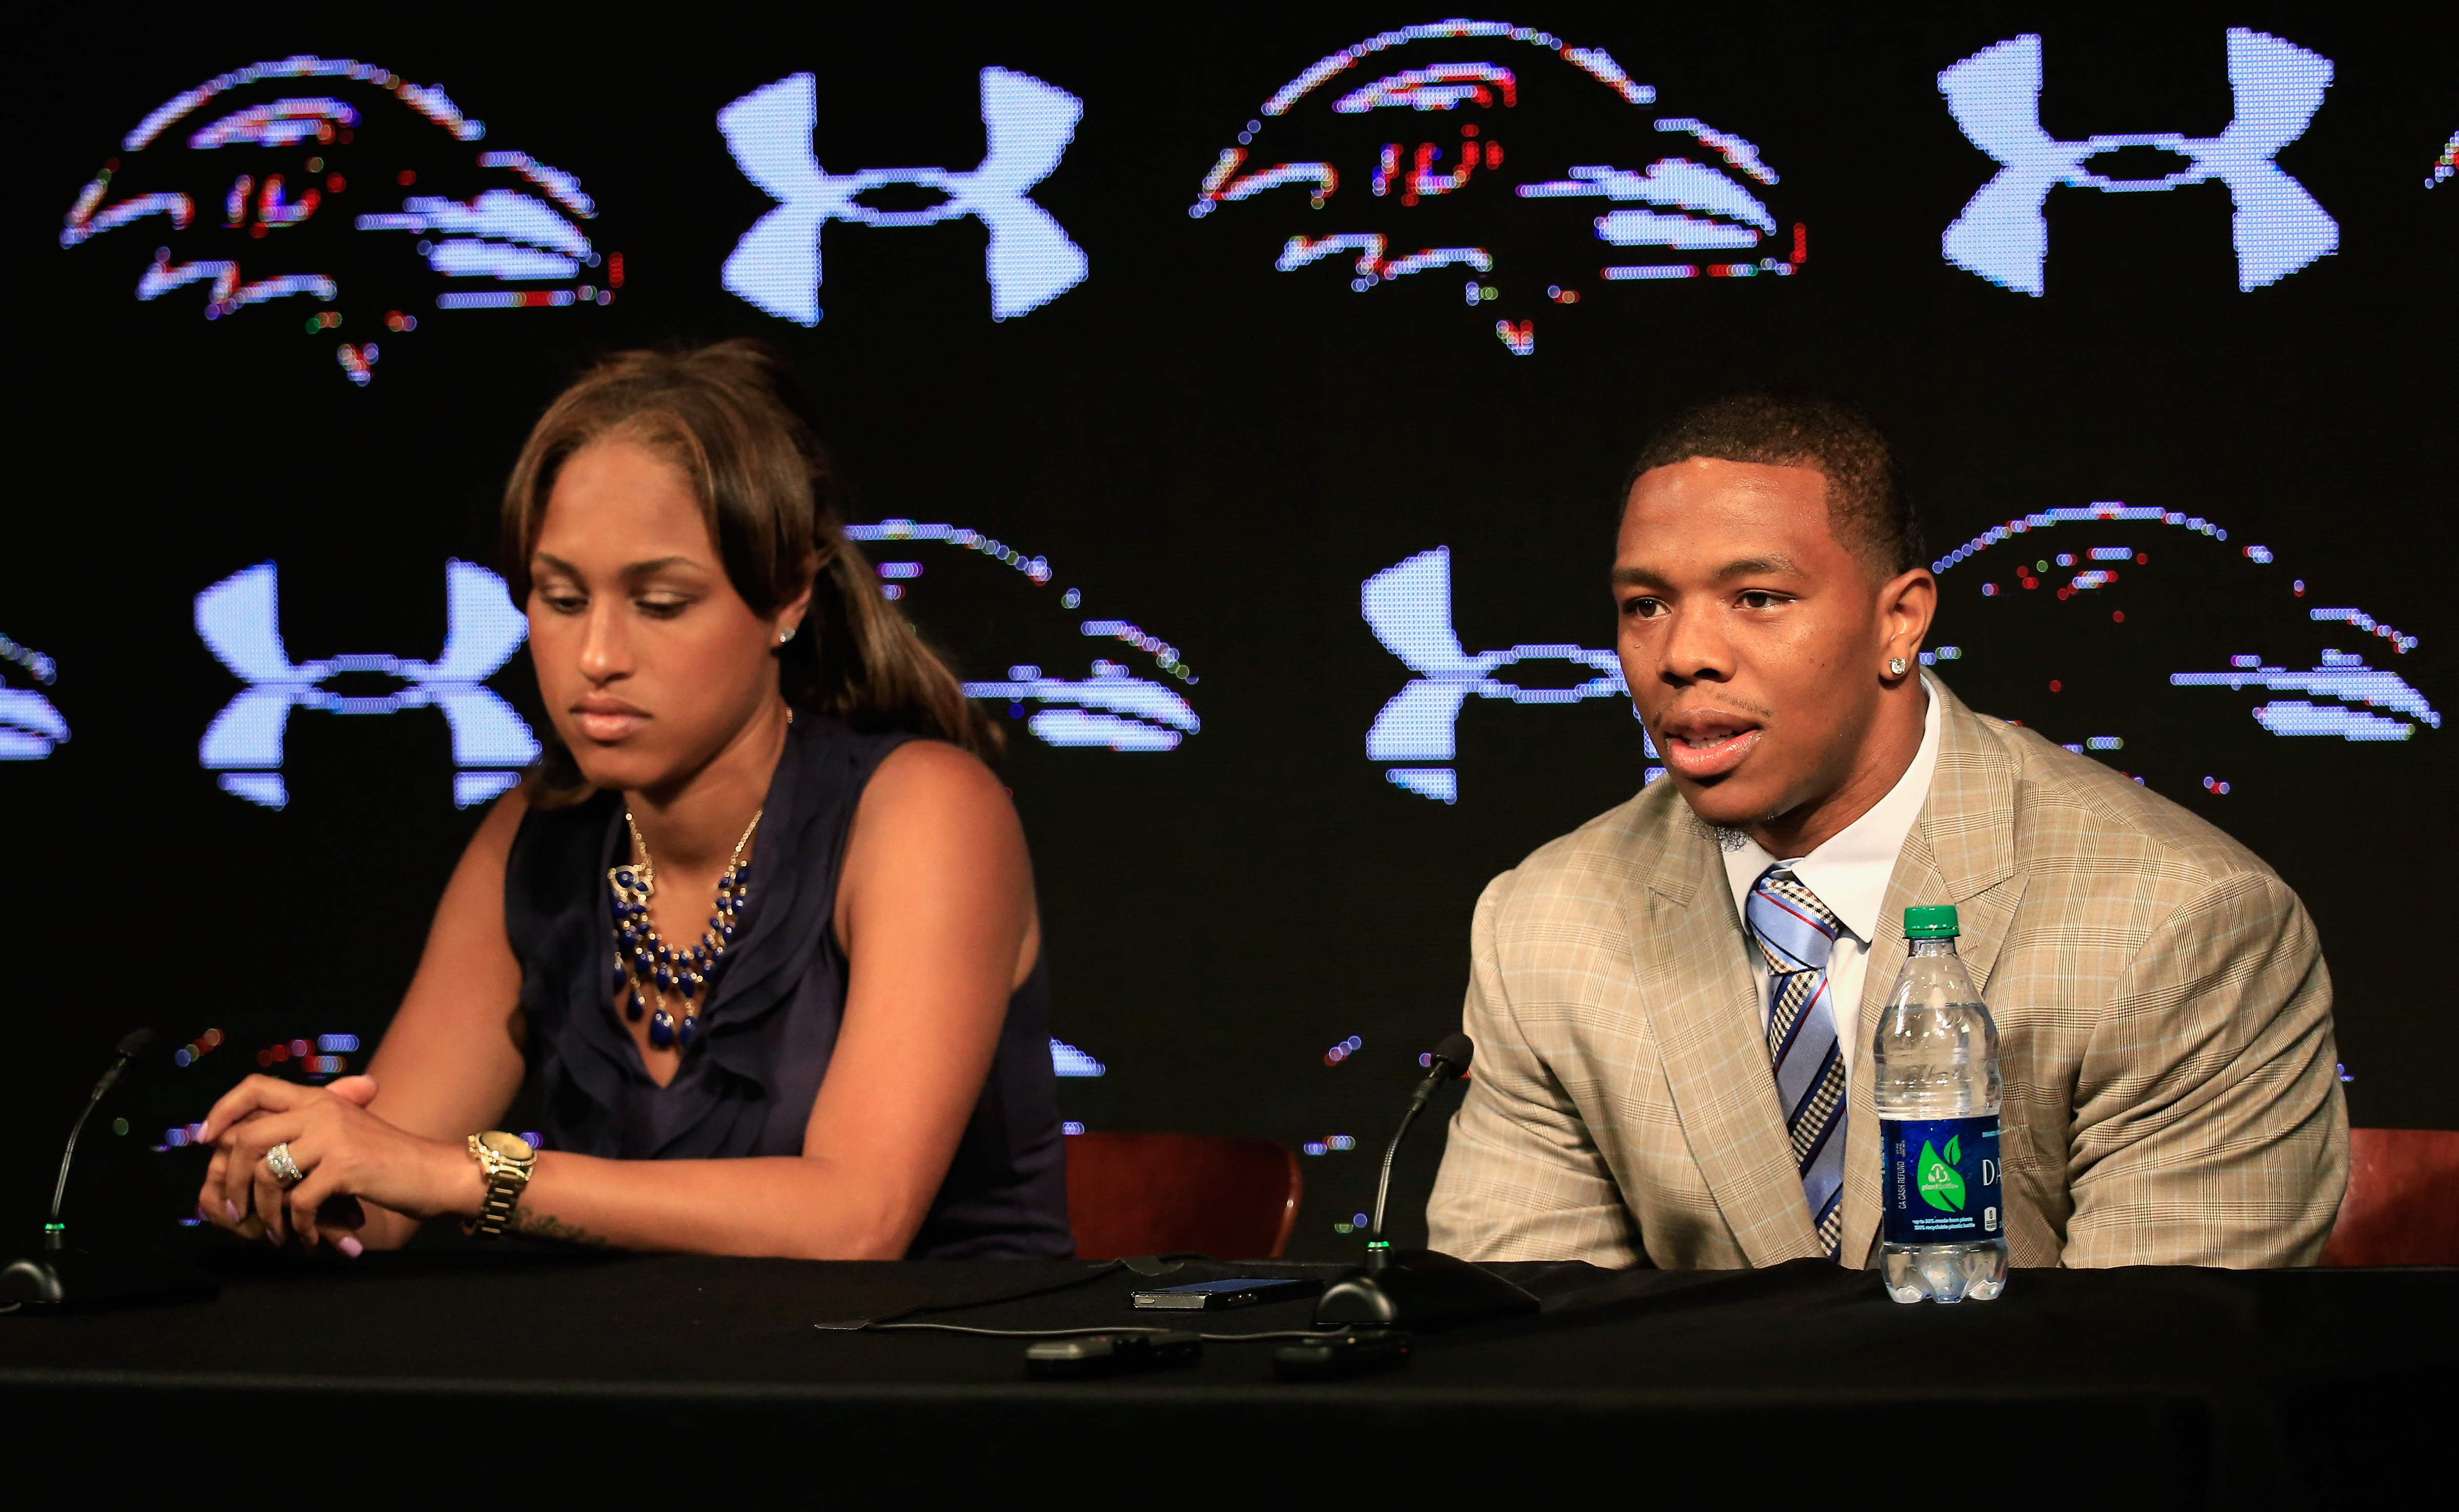 Running back Ray Rice of the Baltimore Ravens addresses a news conference with his wife Janay at the Ravens training center on May 23, 2014 in Owings Mills, Maryland.